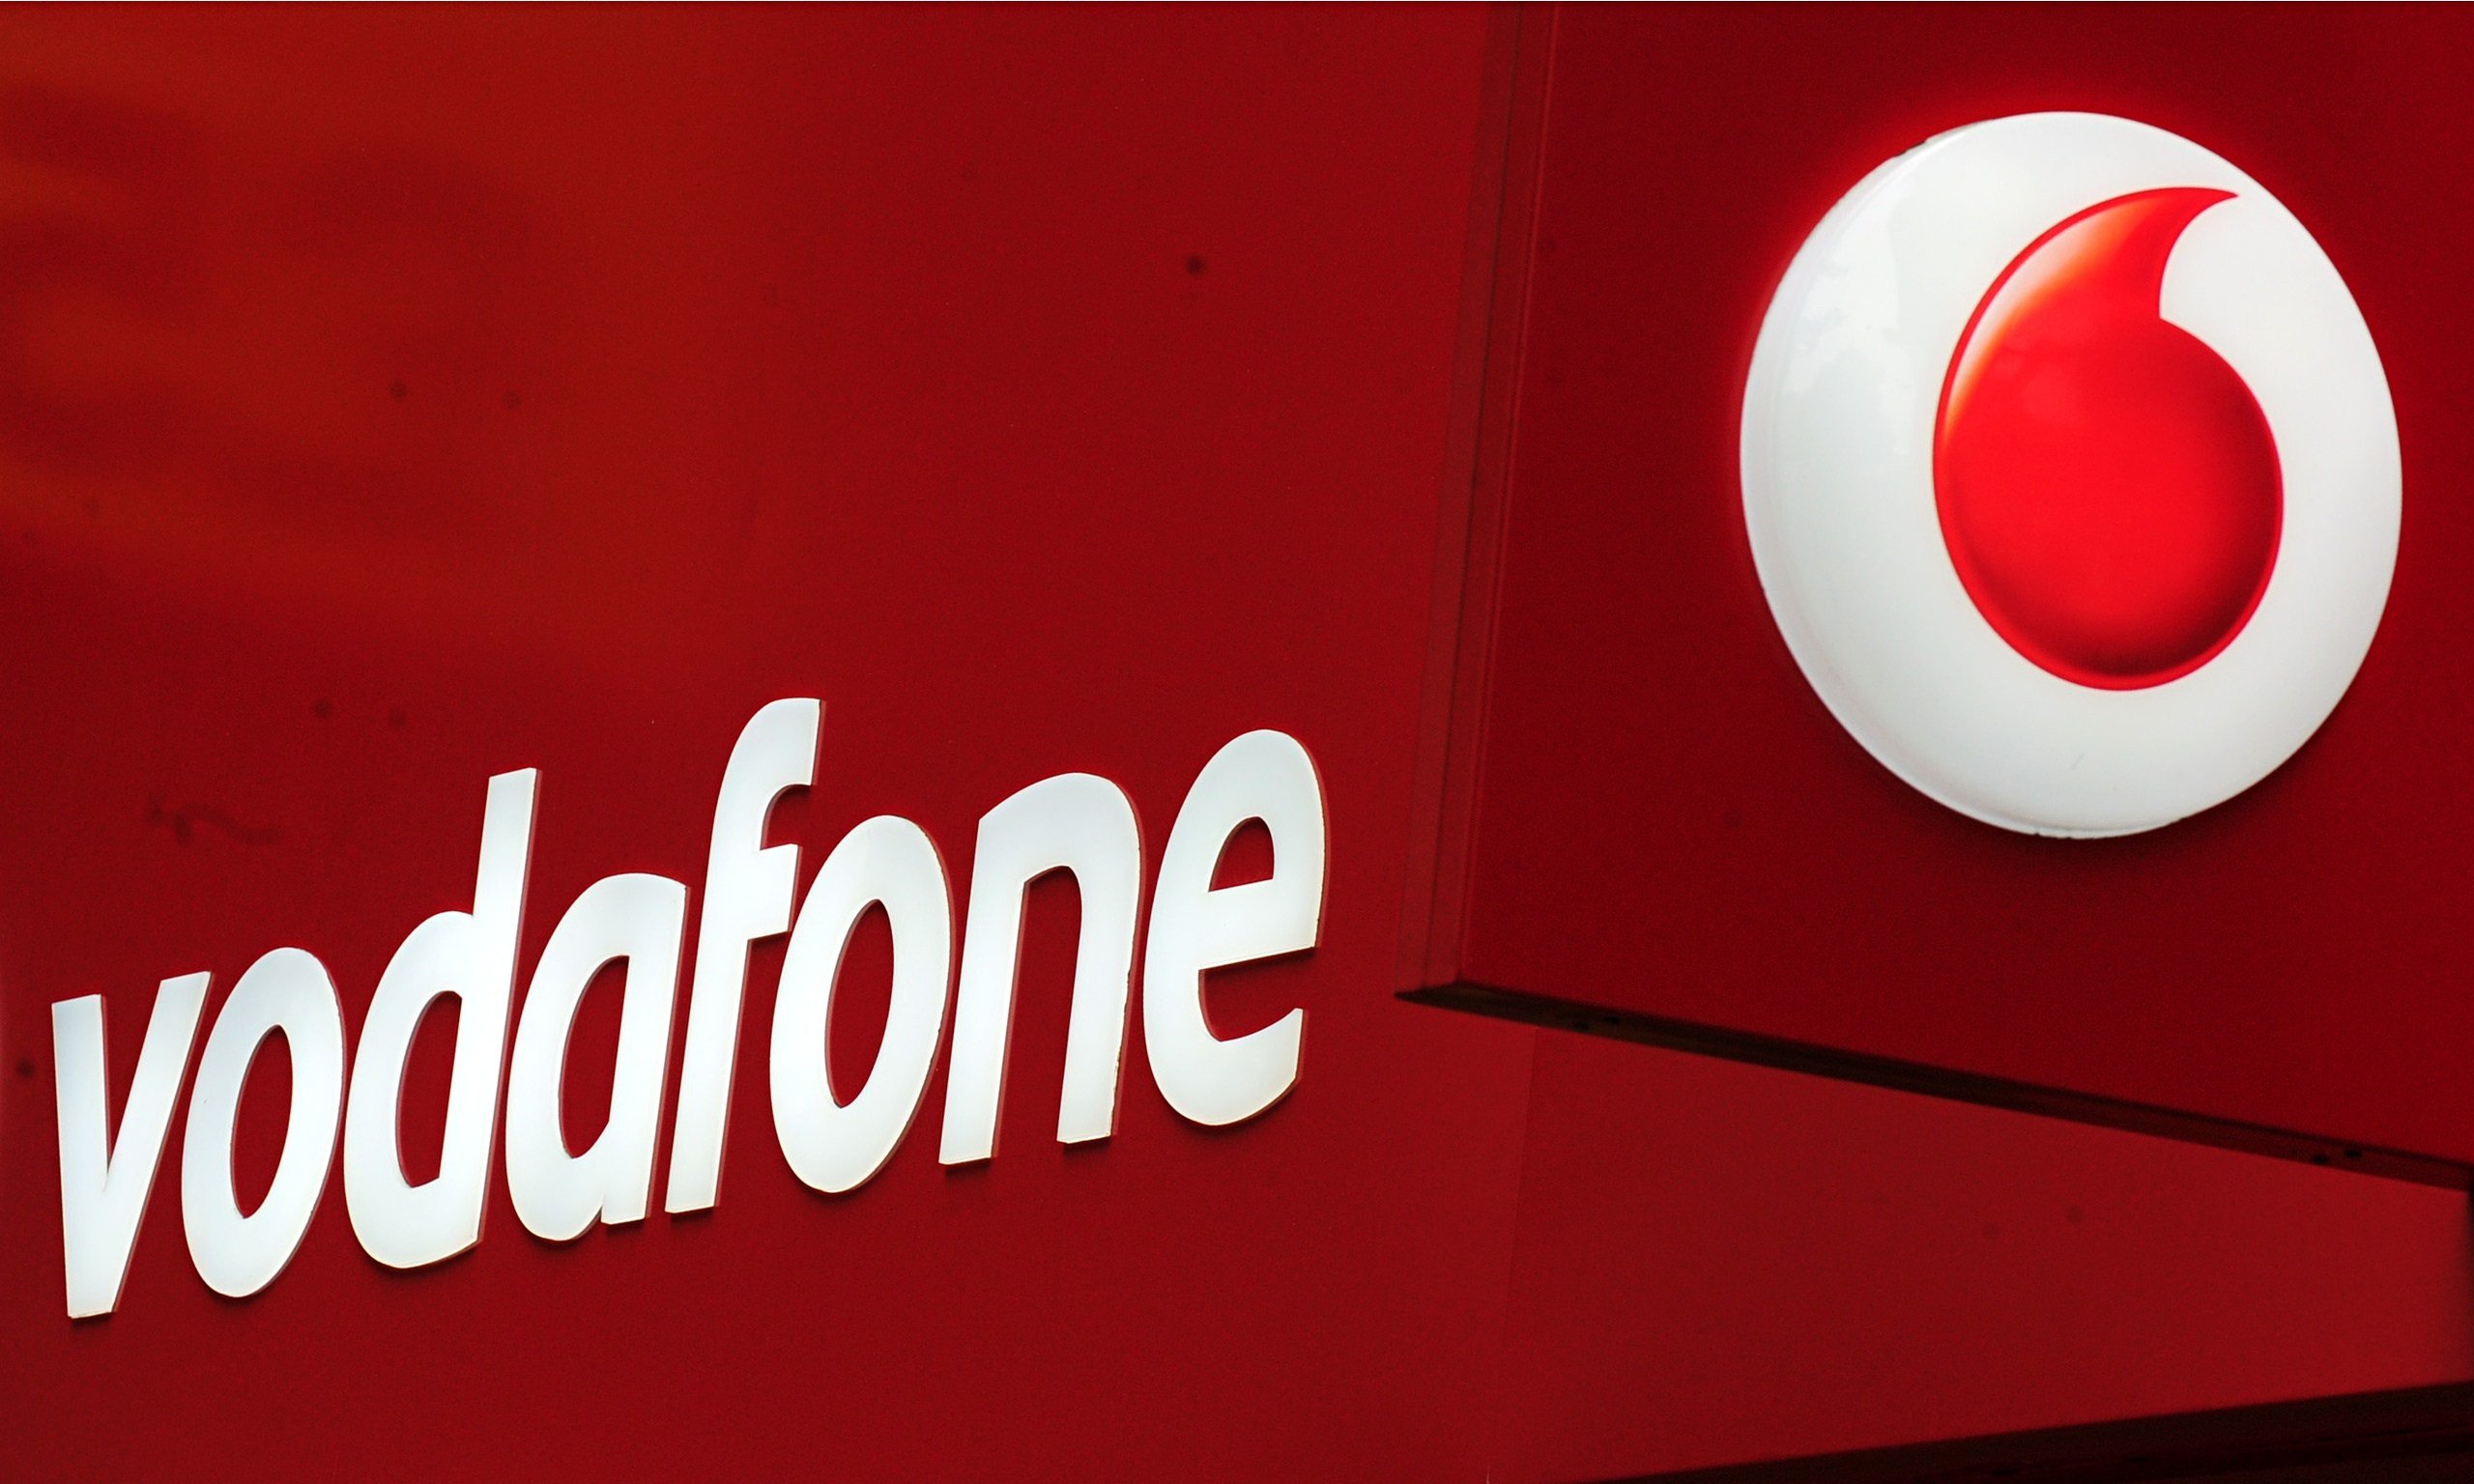 Vodafone's purchase of...